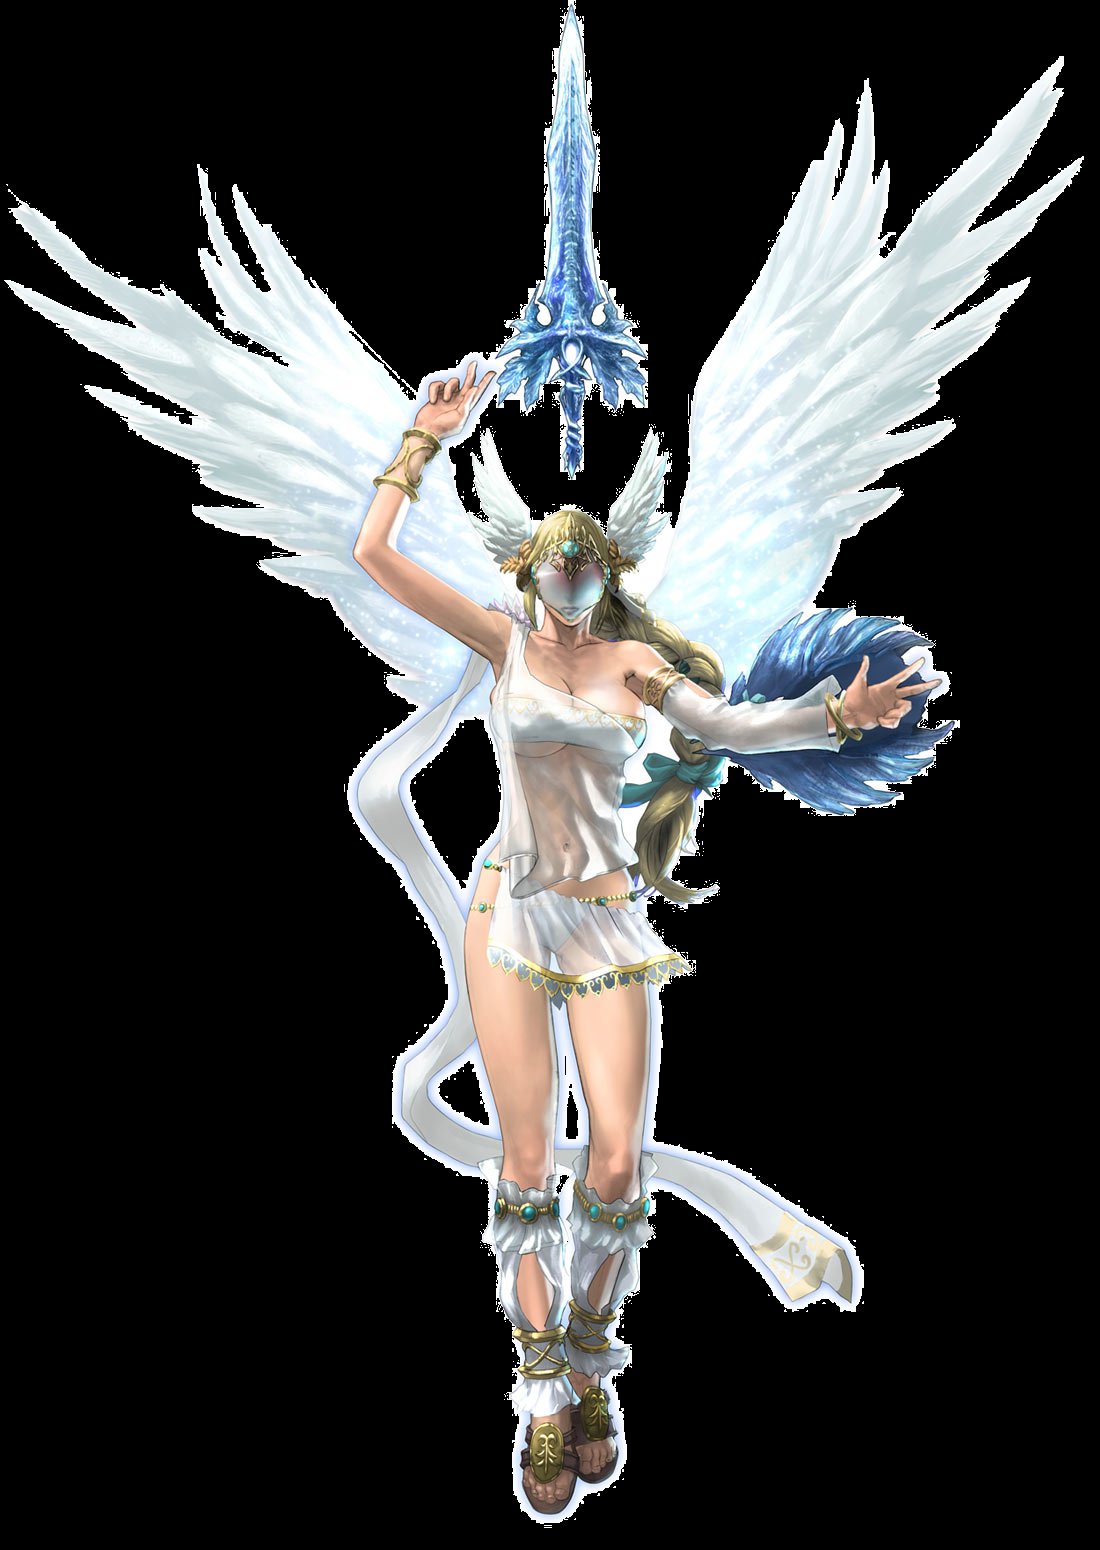 Soul Calibur V Anime Characters : Elysium soul calibur v anime characters database